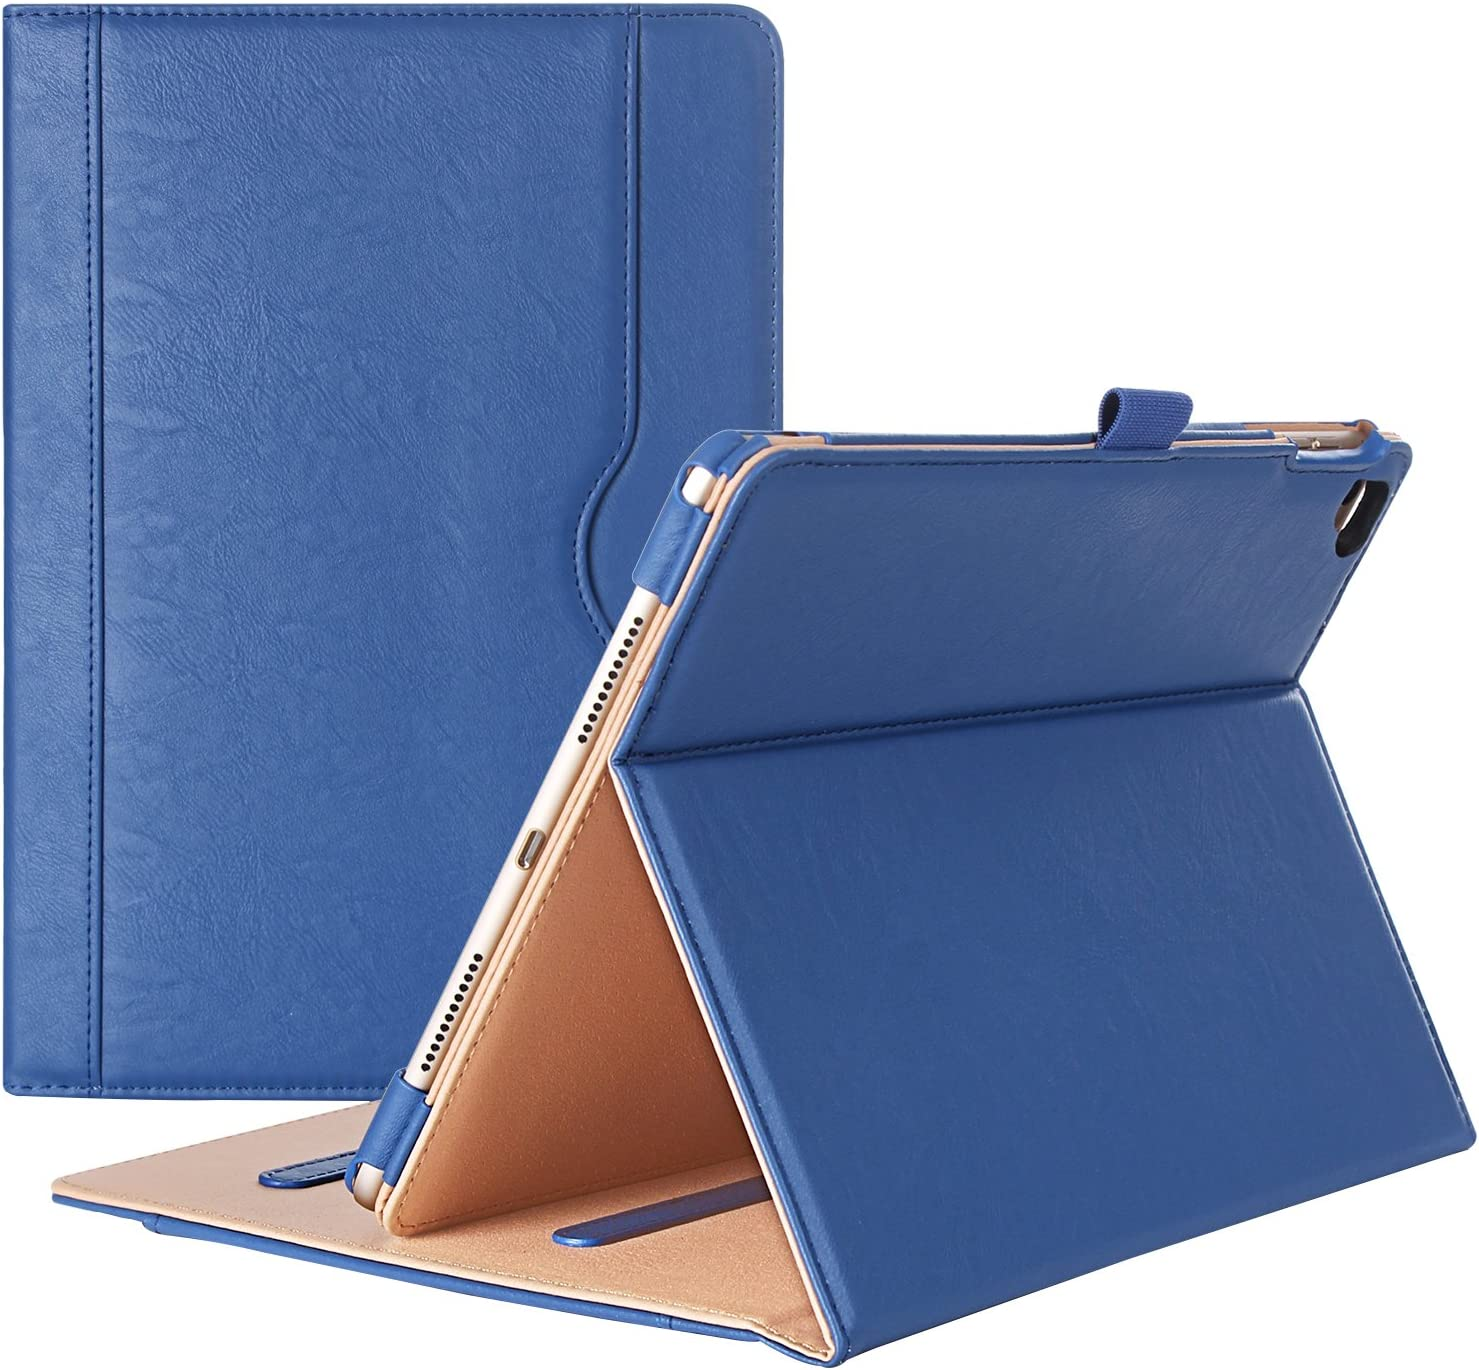 iPad Pro 9.7 Case - ProCase Stand Folio Case Cover for Apple iPad Pro 9.7 Inch 2016, with Multiple Viewing Angles, Document Card Pocket (Navy Blue)